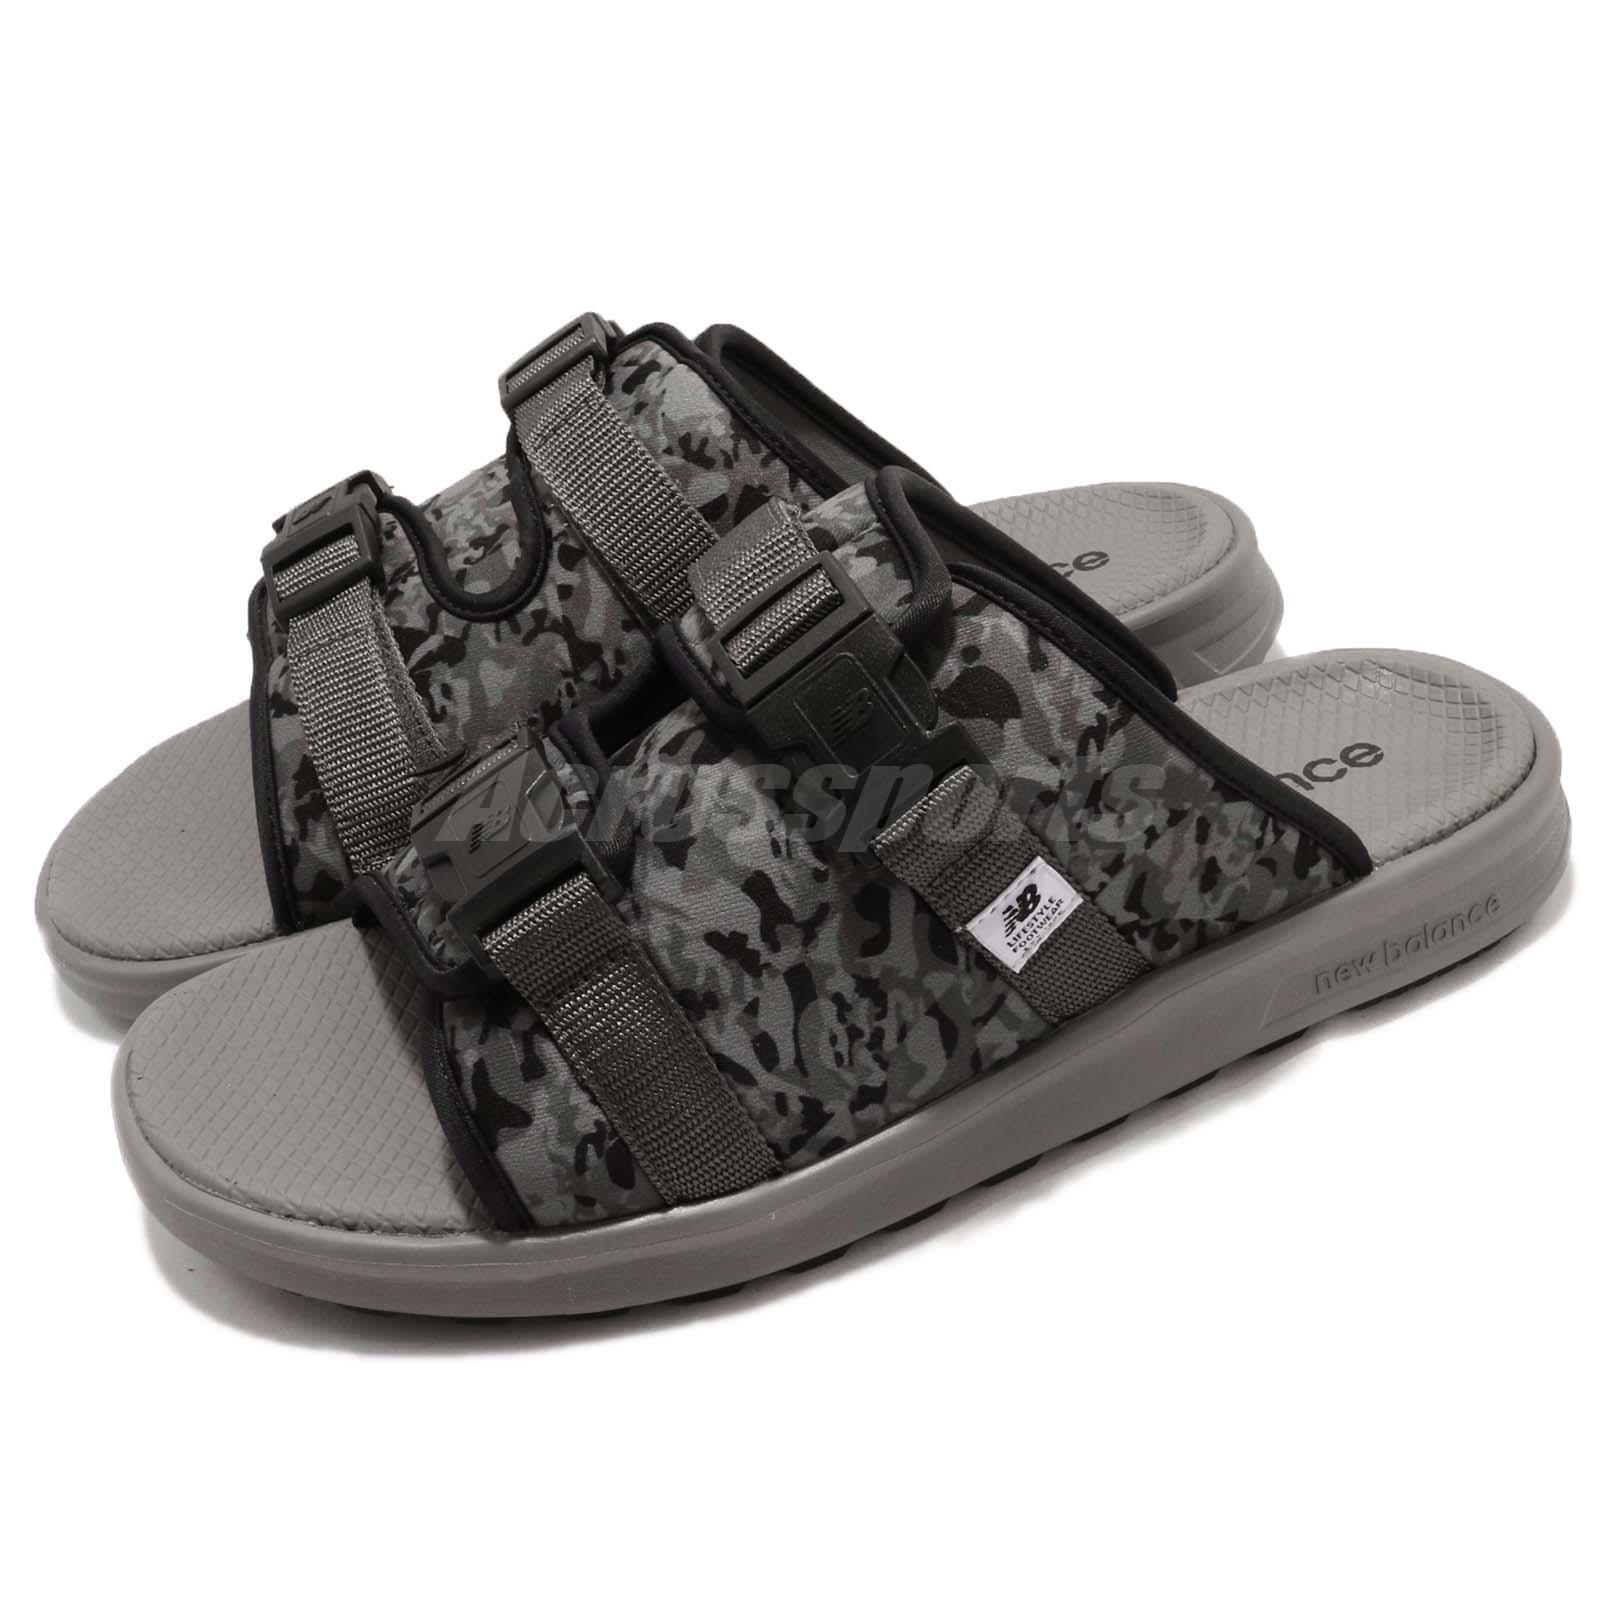 New Balance SDL330BA D Black Grey Camo Camouflage One Click Men Sandal SDL330BAD